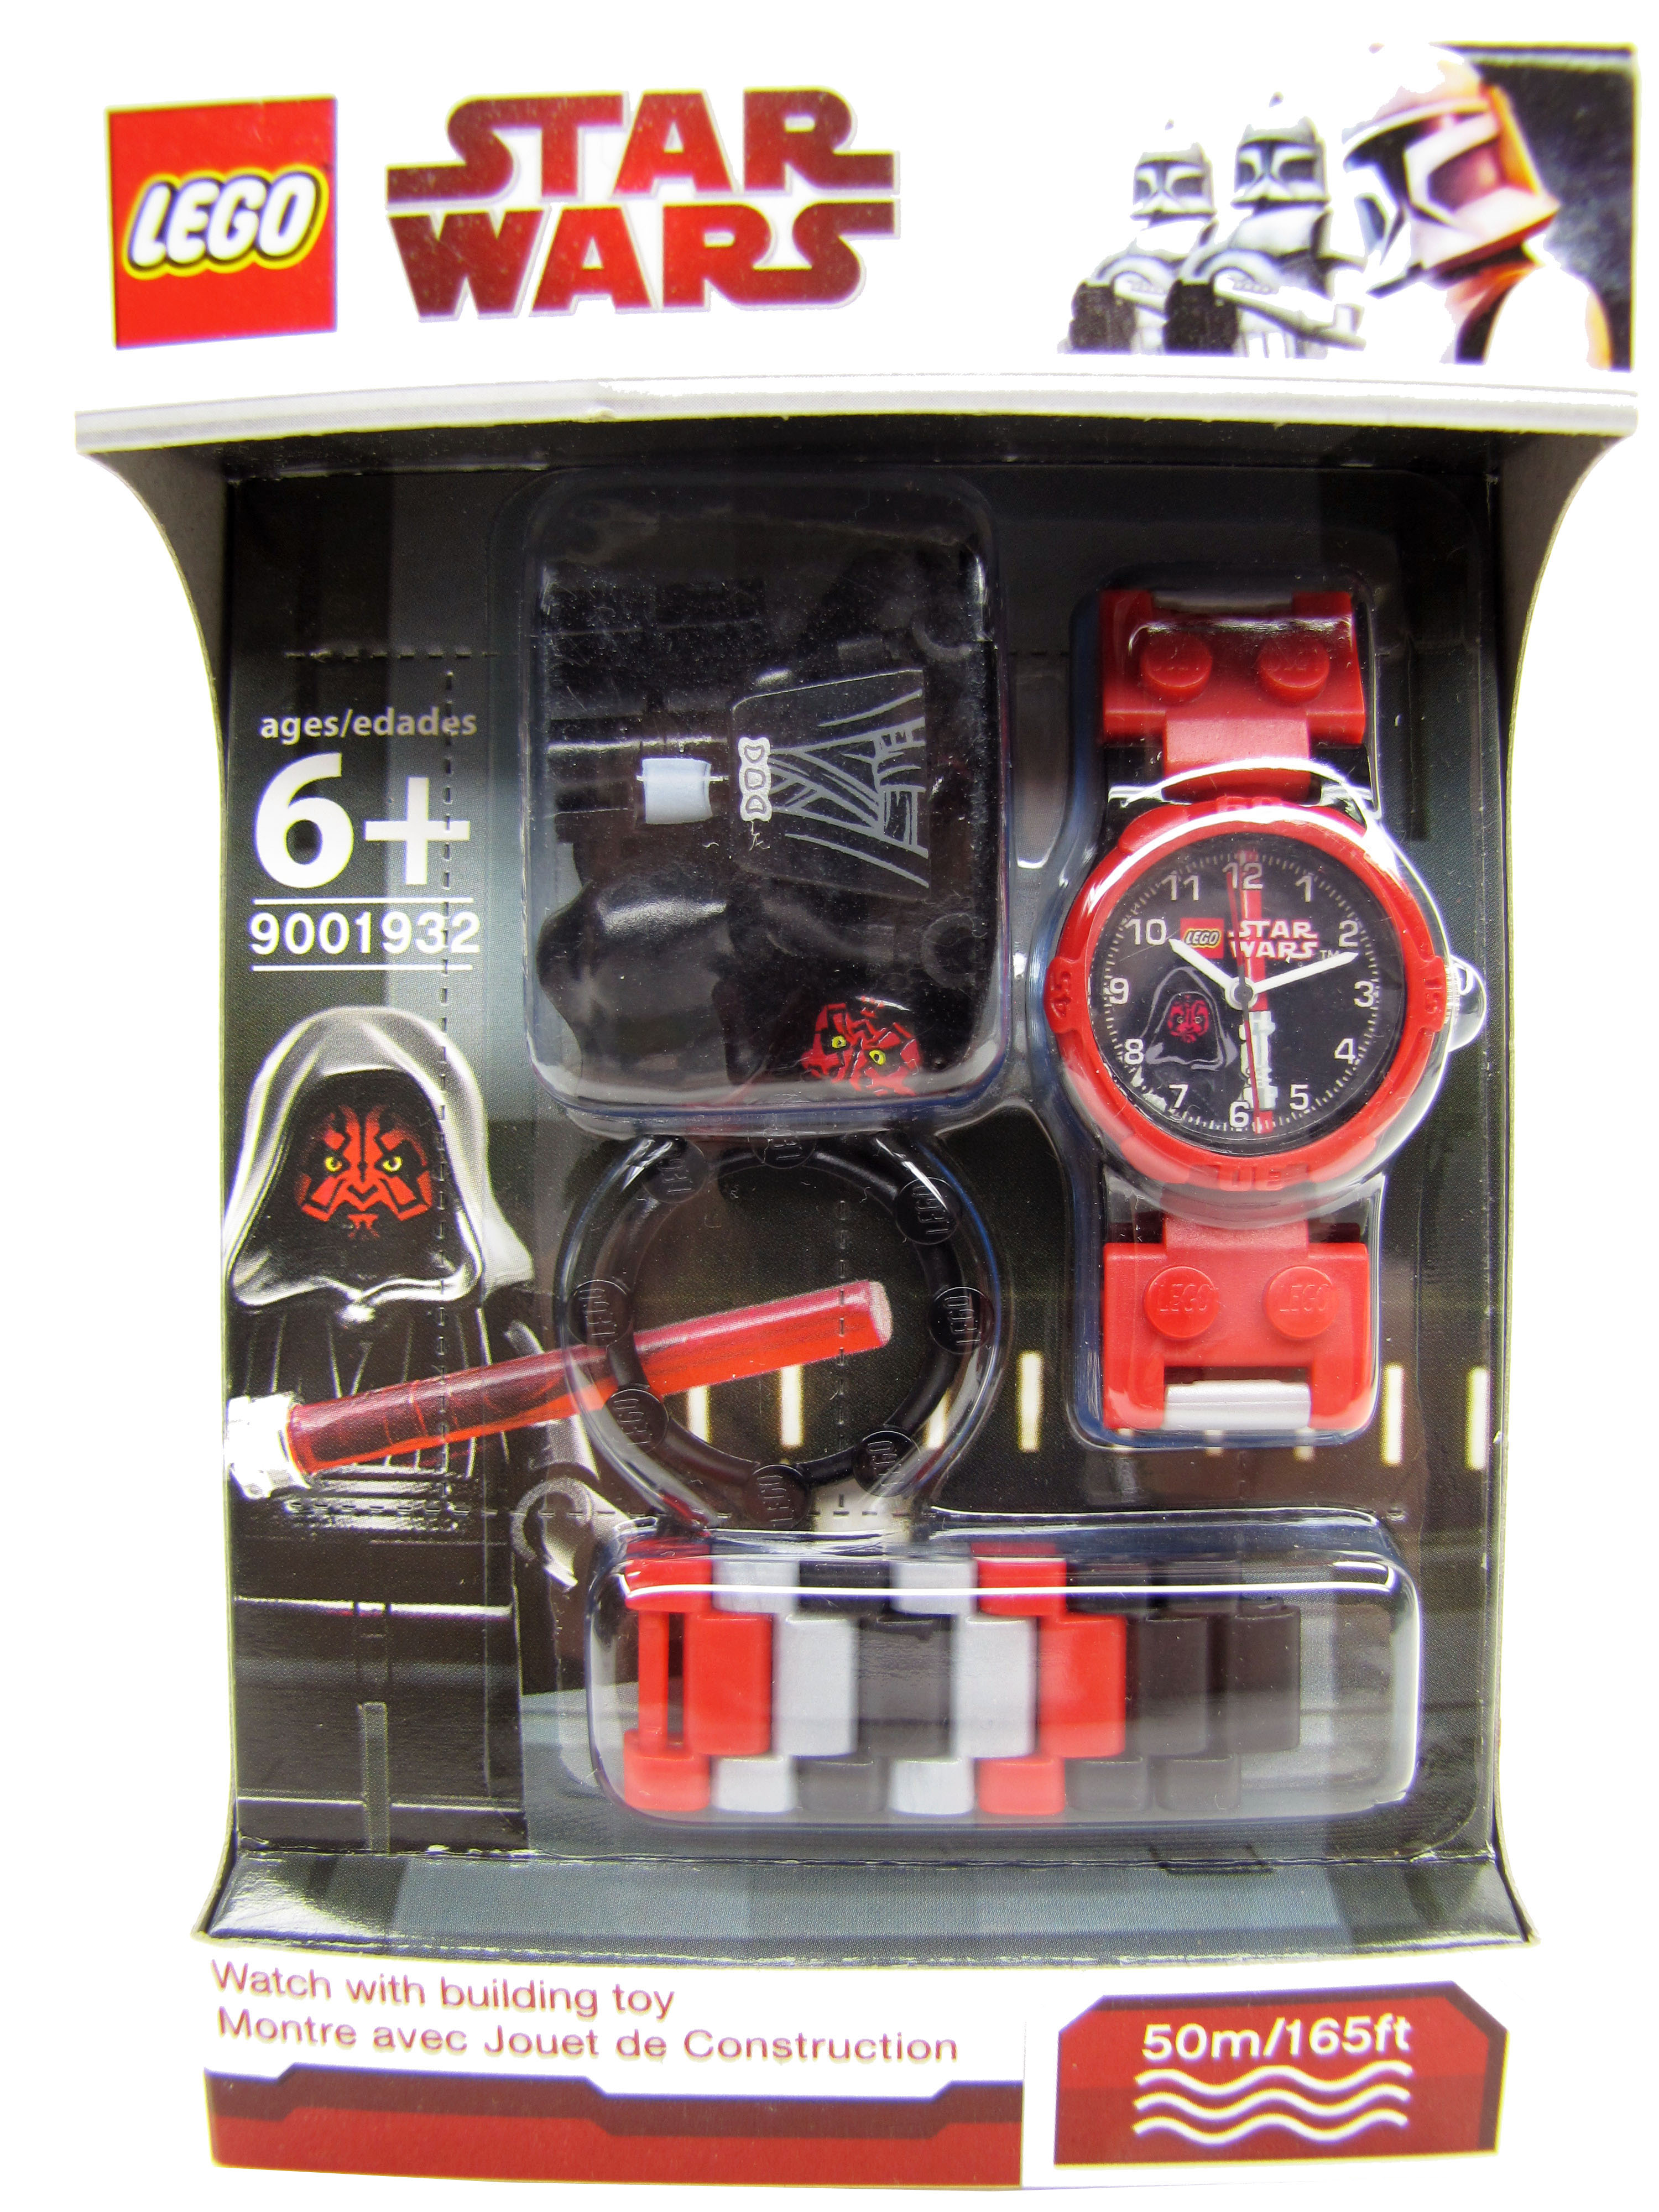 Lego Star Wars Darth Maul Minifigure Watch NEW Lego Time 900193